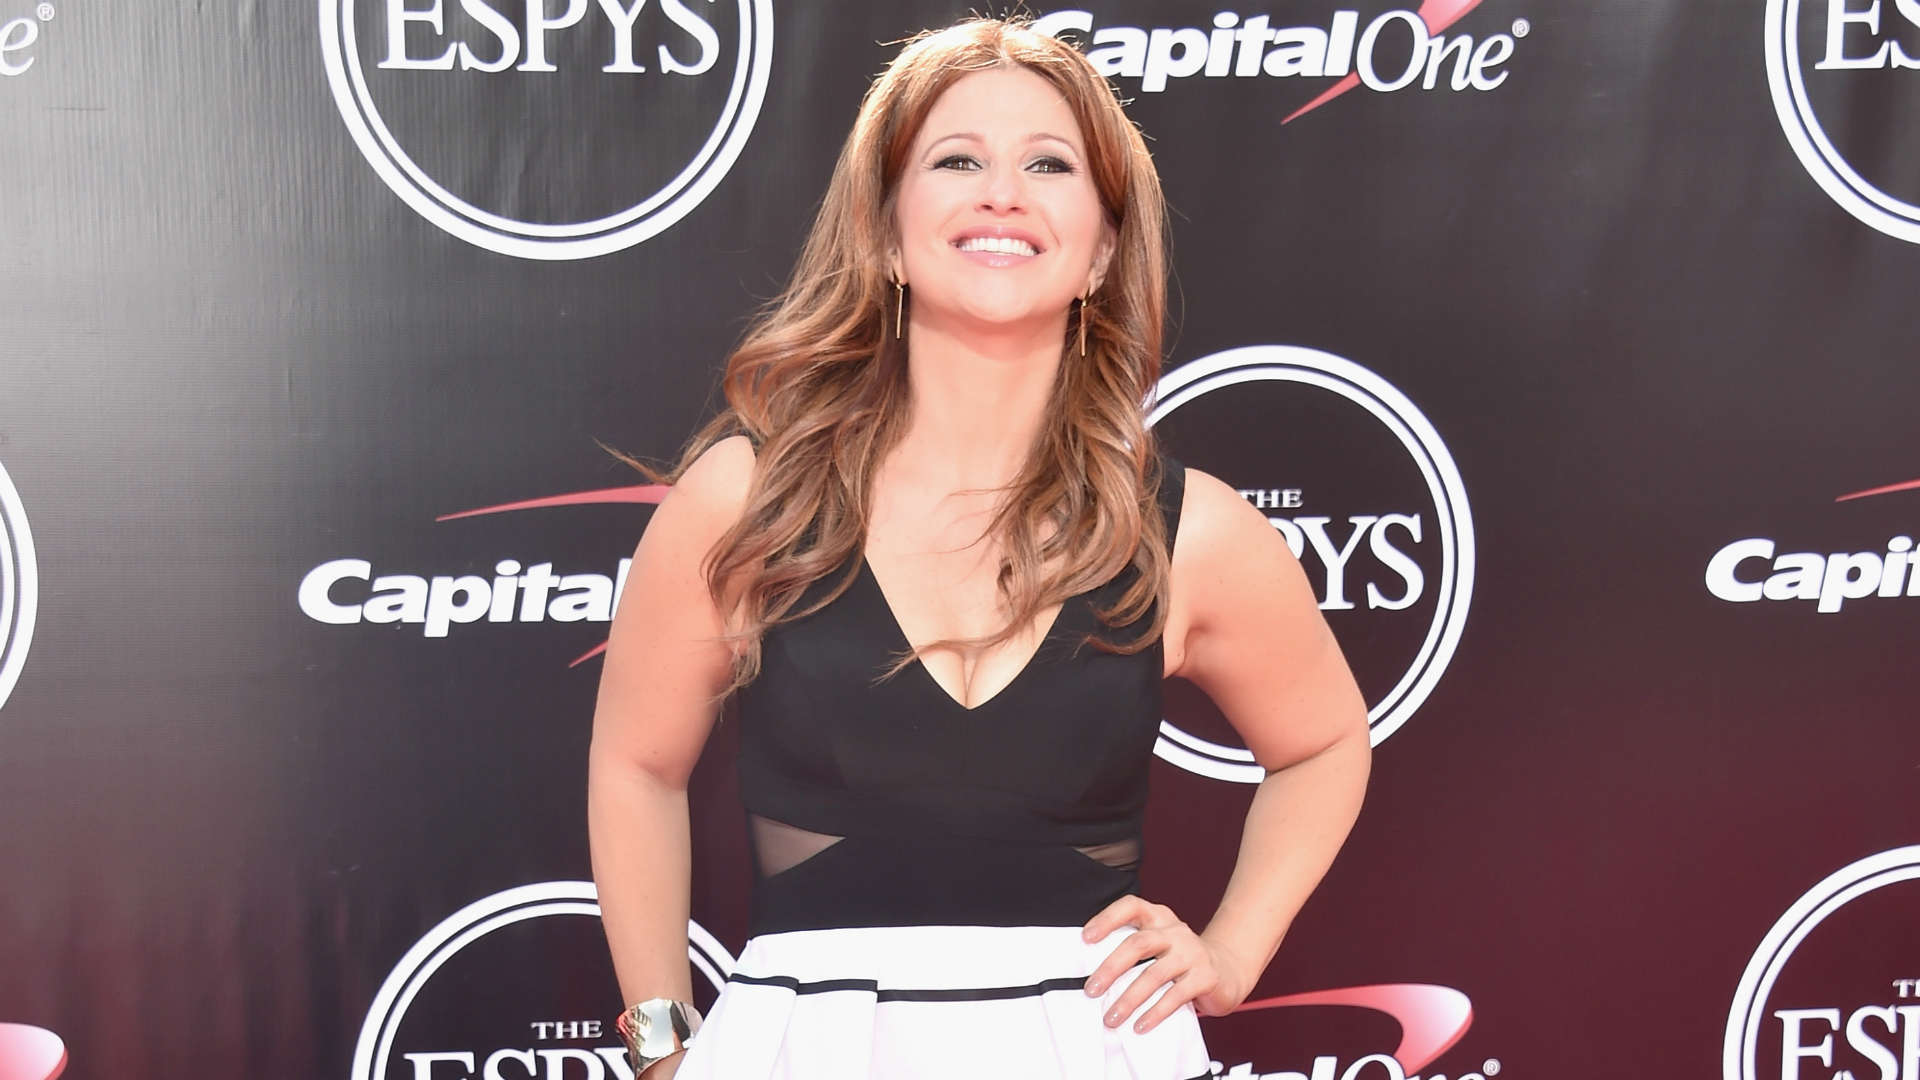 Rachel Nichols responds to Charles Barkley's 'girly' comments